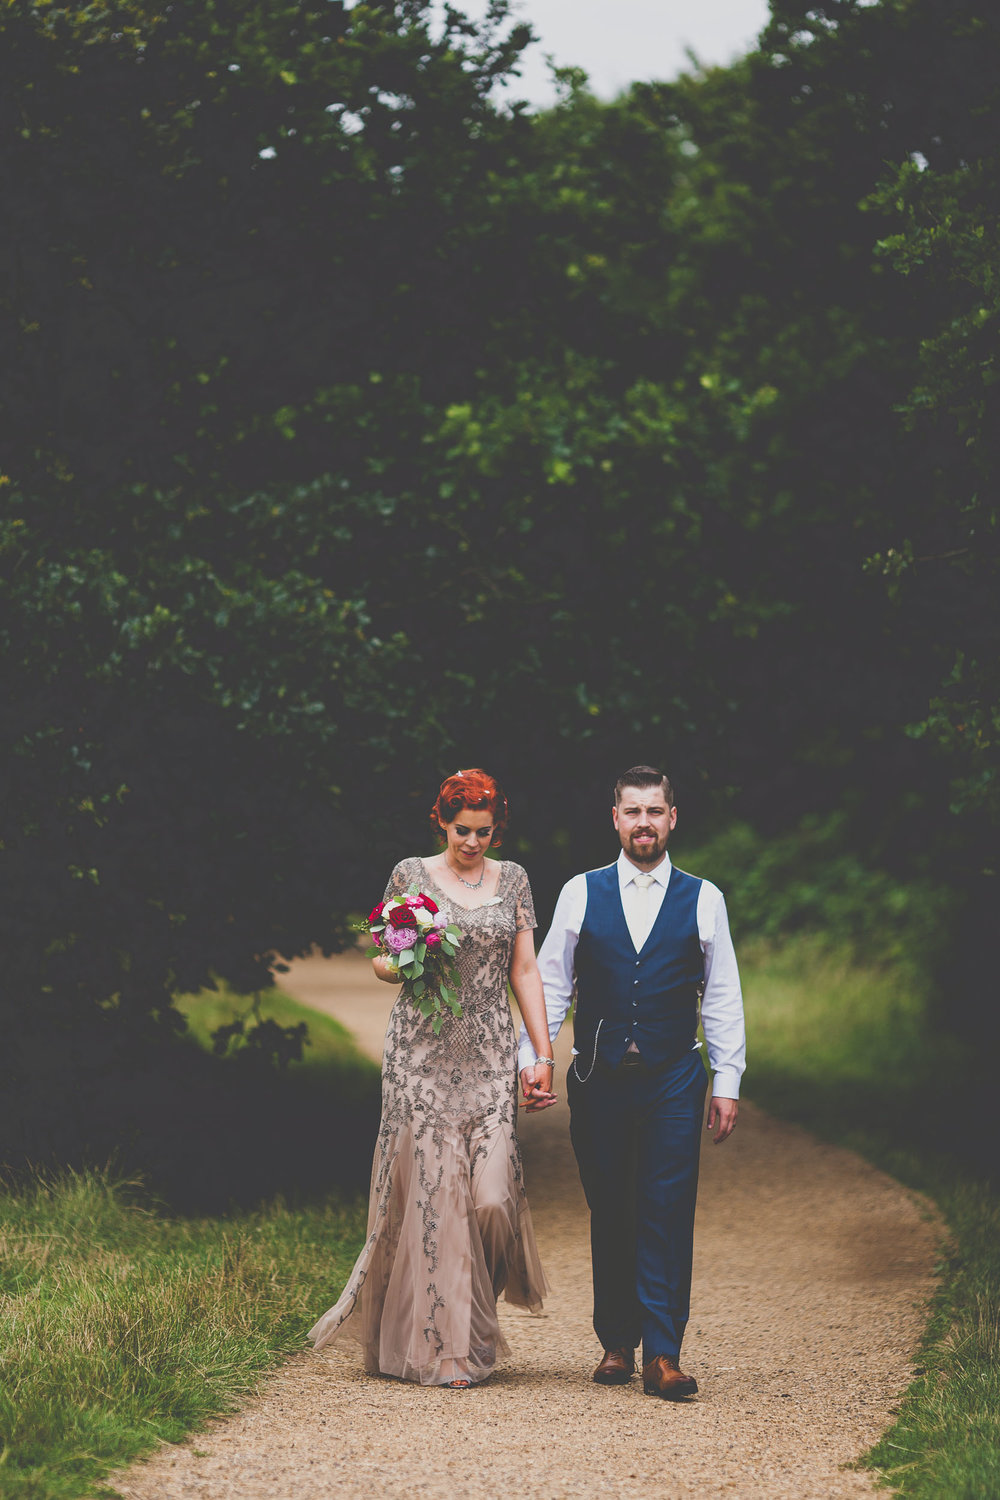 queen-elizabeths-hunting-lodge-epping-forest-wedding255.jpg